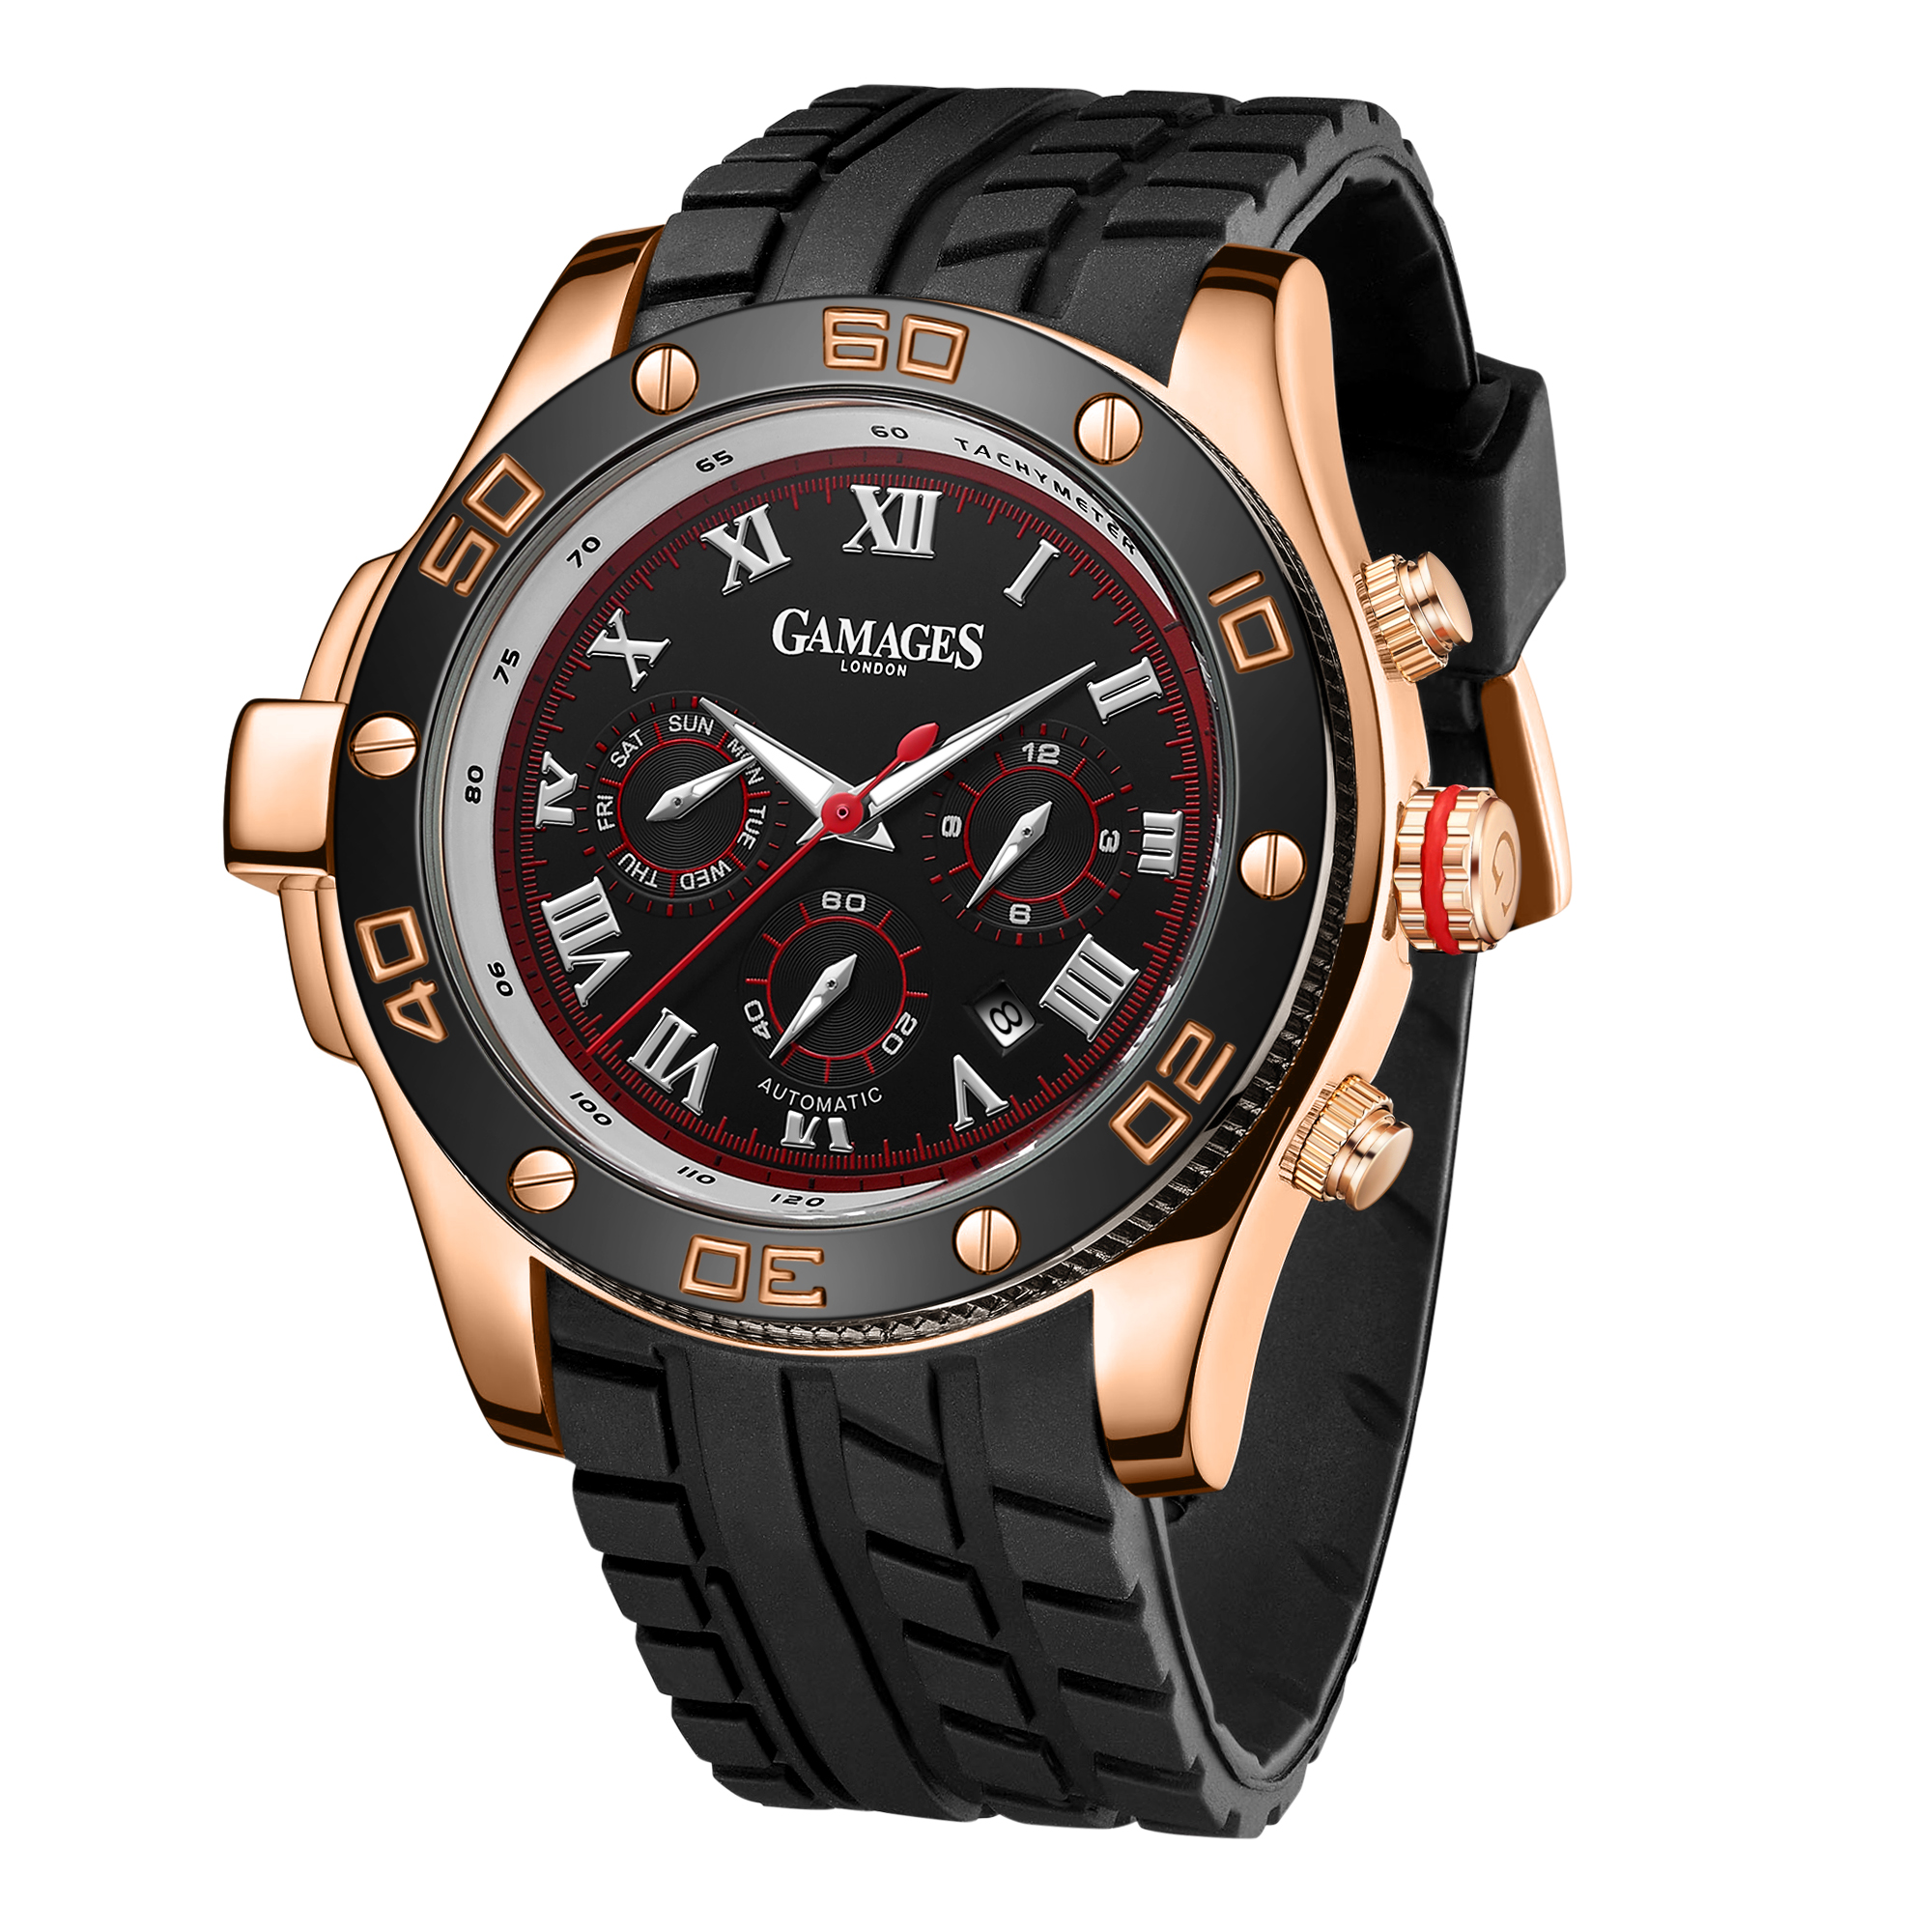 LLtd Edition Hand Assembled Gamages Driver Automatic Rose Gold – 5 Year Warranty & Free Delivery - Image 4 of 5